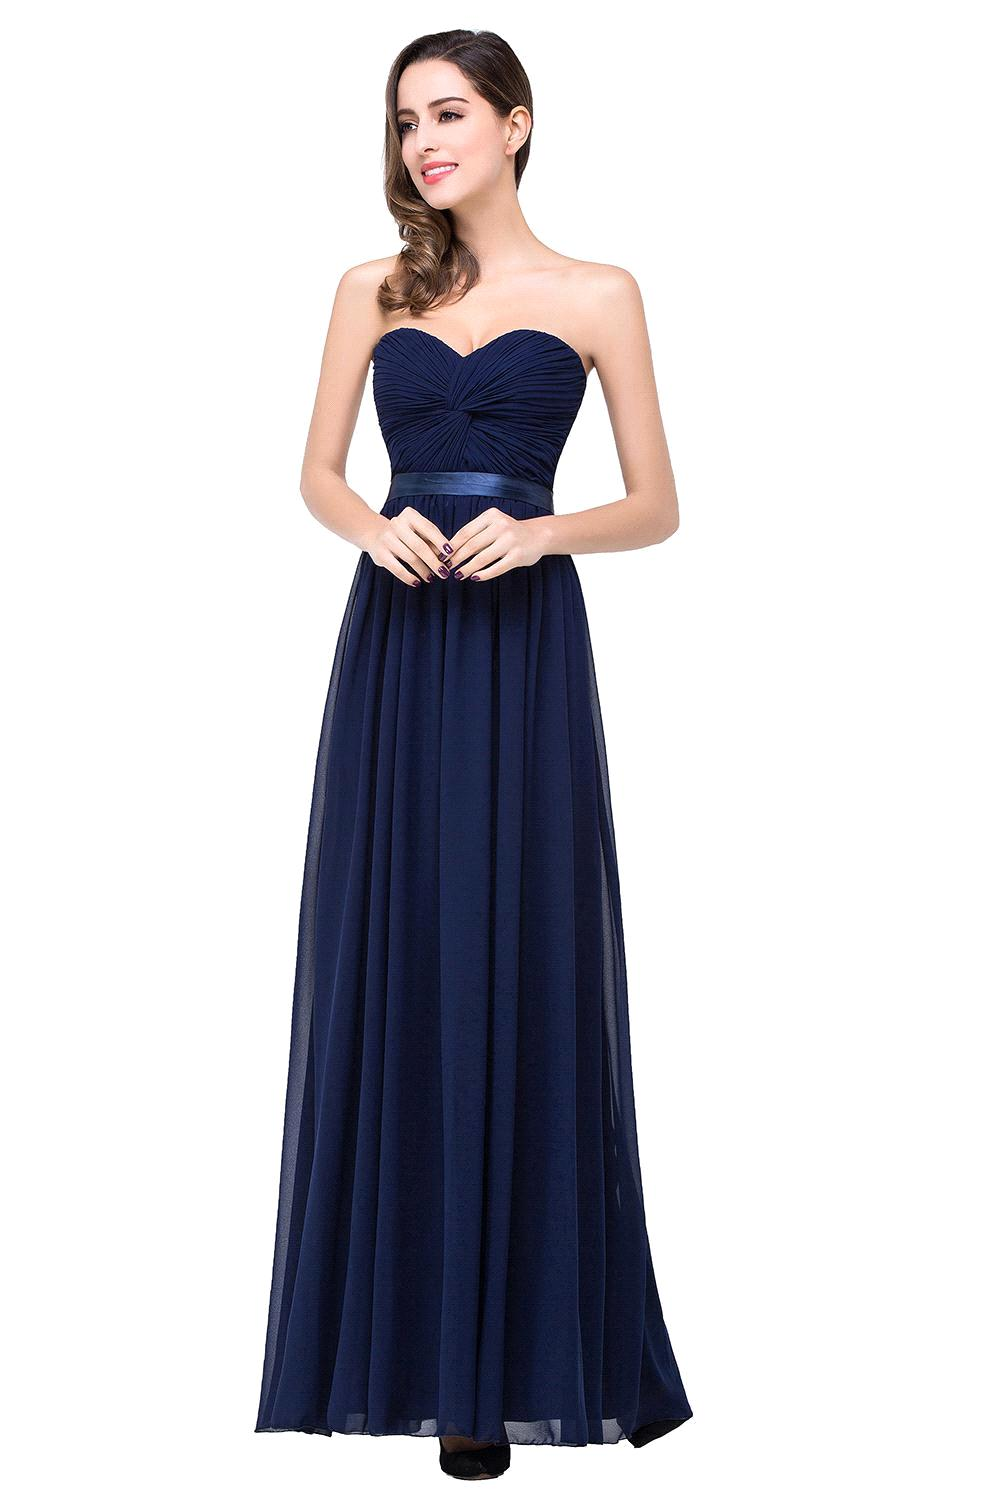 Compare prices on long navy chiffon bridesmaid dresses online cheap price under 40 real samples sexy sweetheart navy blue long chiffon bridesmaid dresses 2017 ruched ombrellifo Image collections